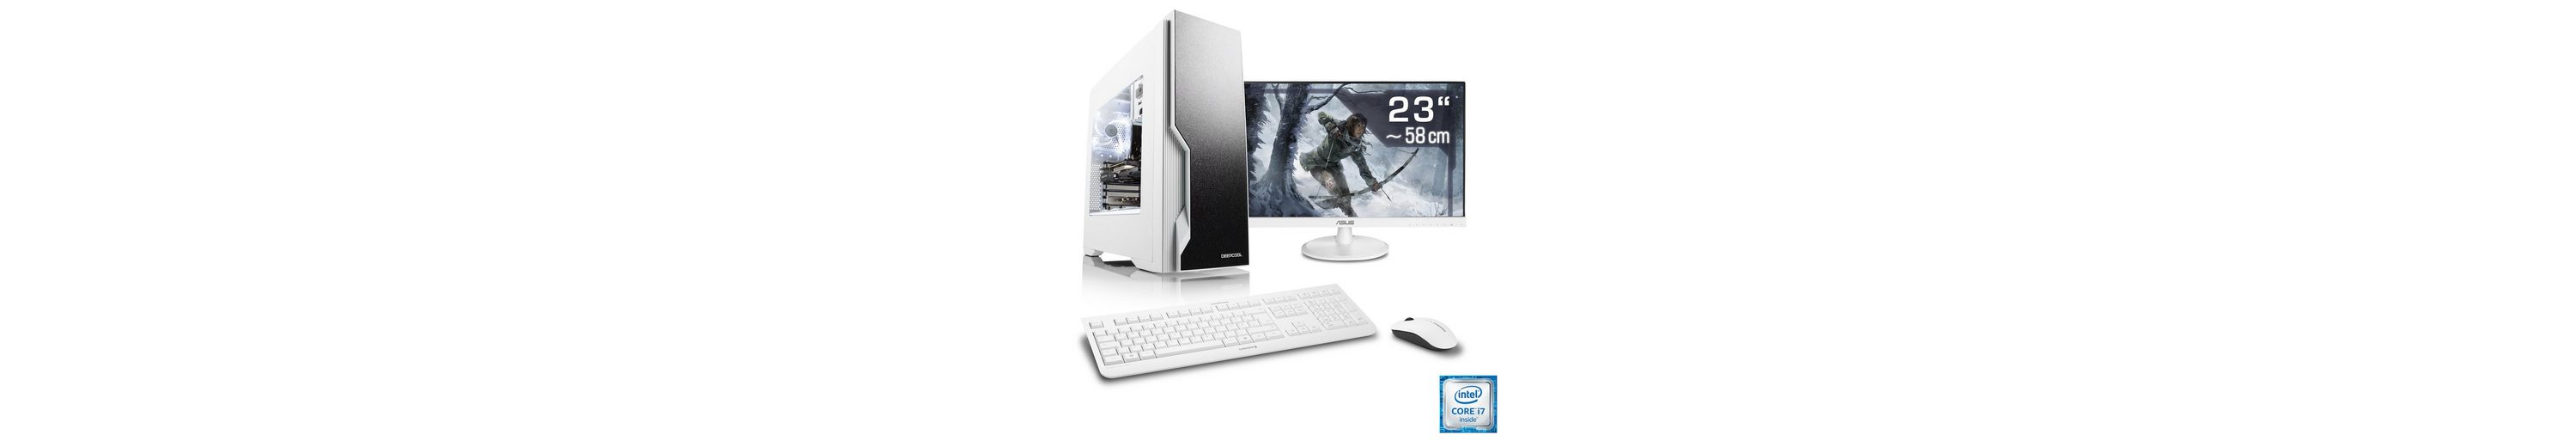 "CSL Gaming PC Set | i7-6700 | GeForce GTX 1060 | 16 GB RAM | 23"" TFT »Speed T7683 Windows 10 Home«"